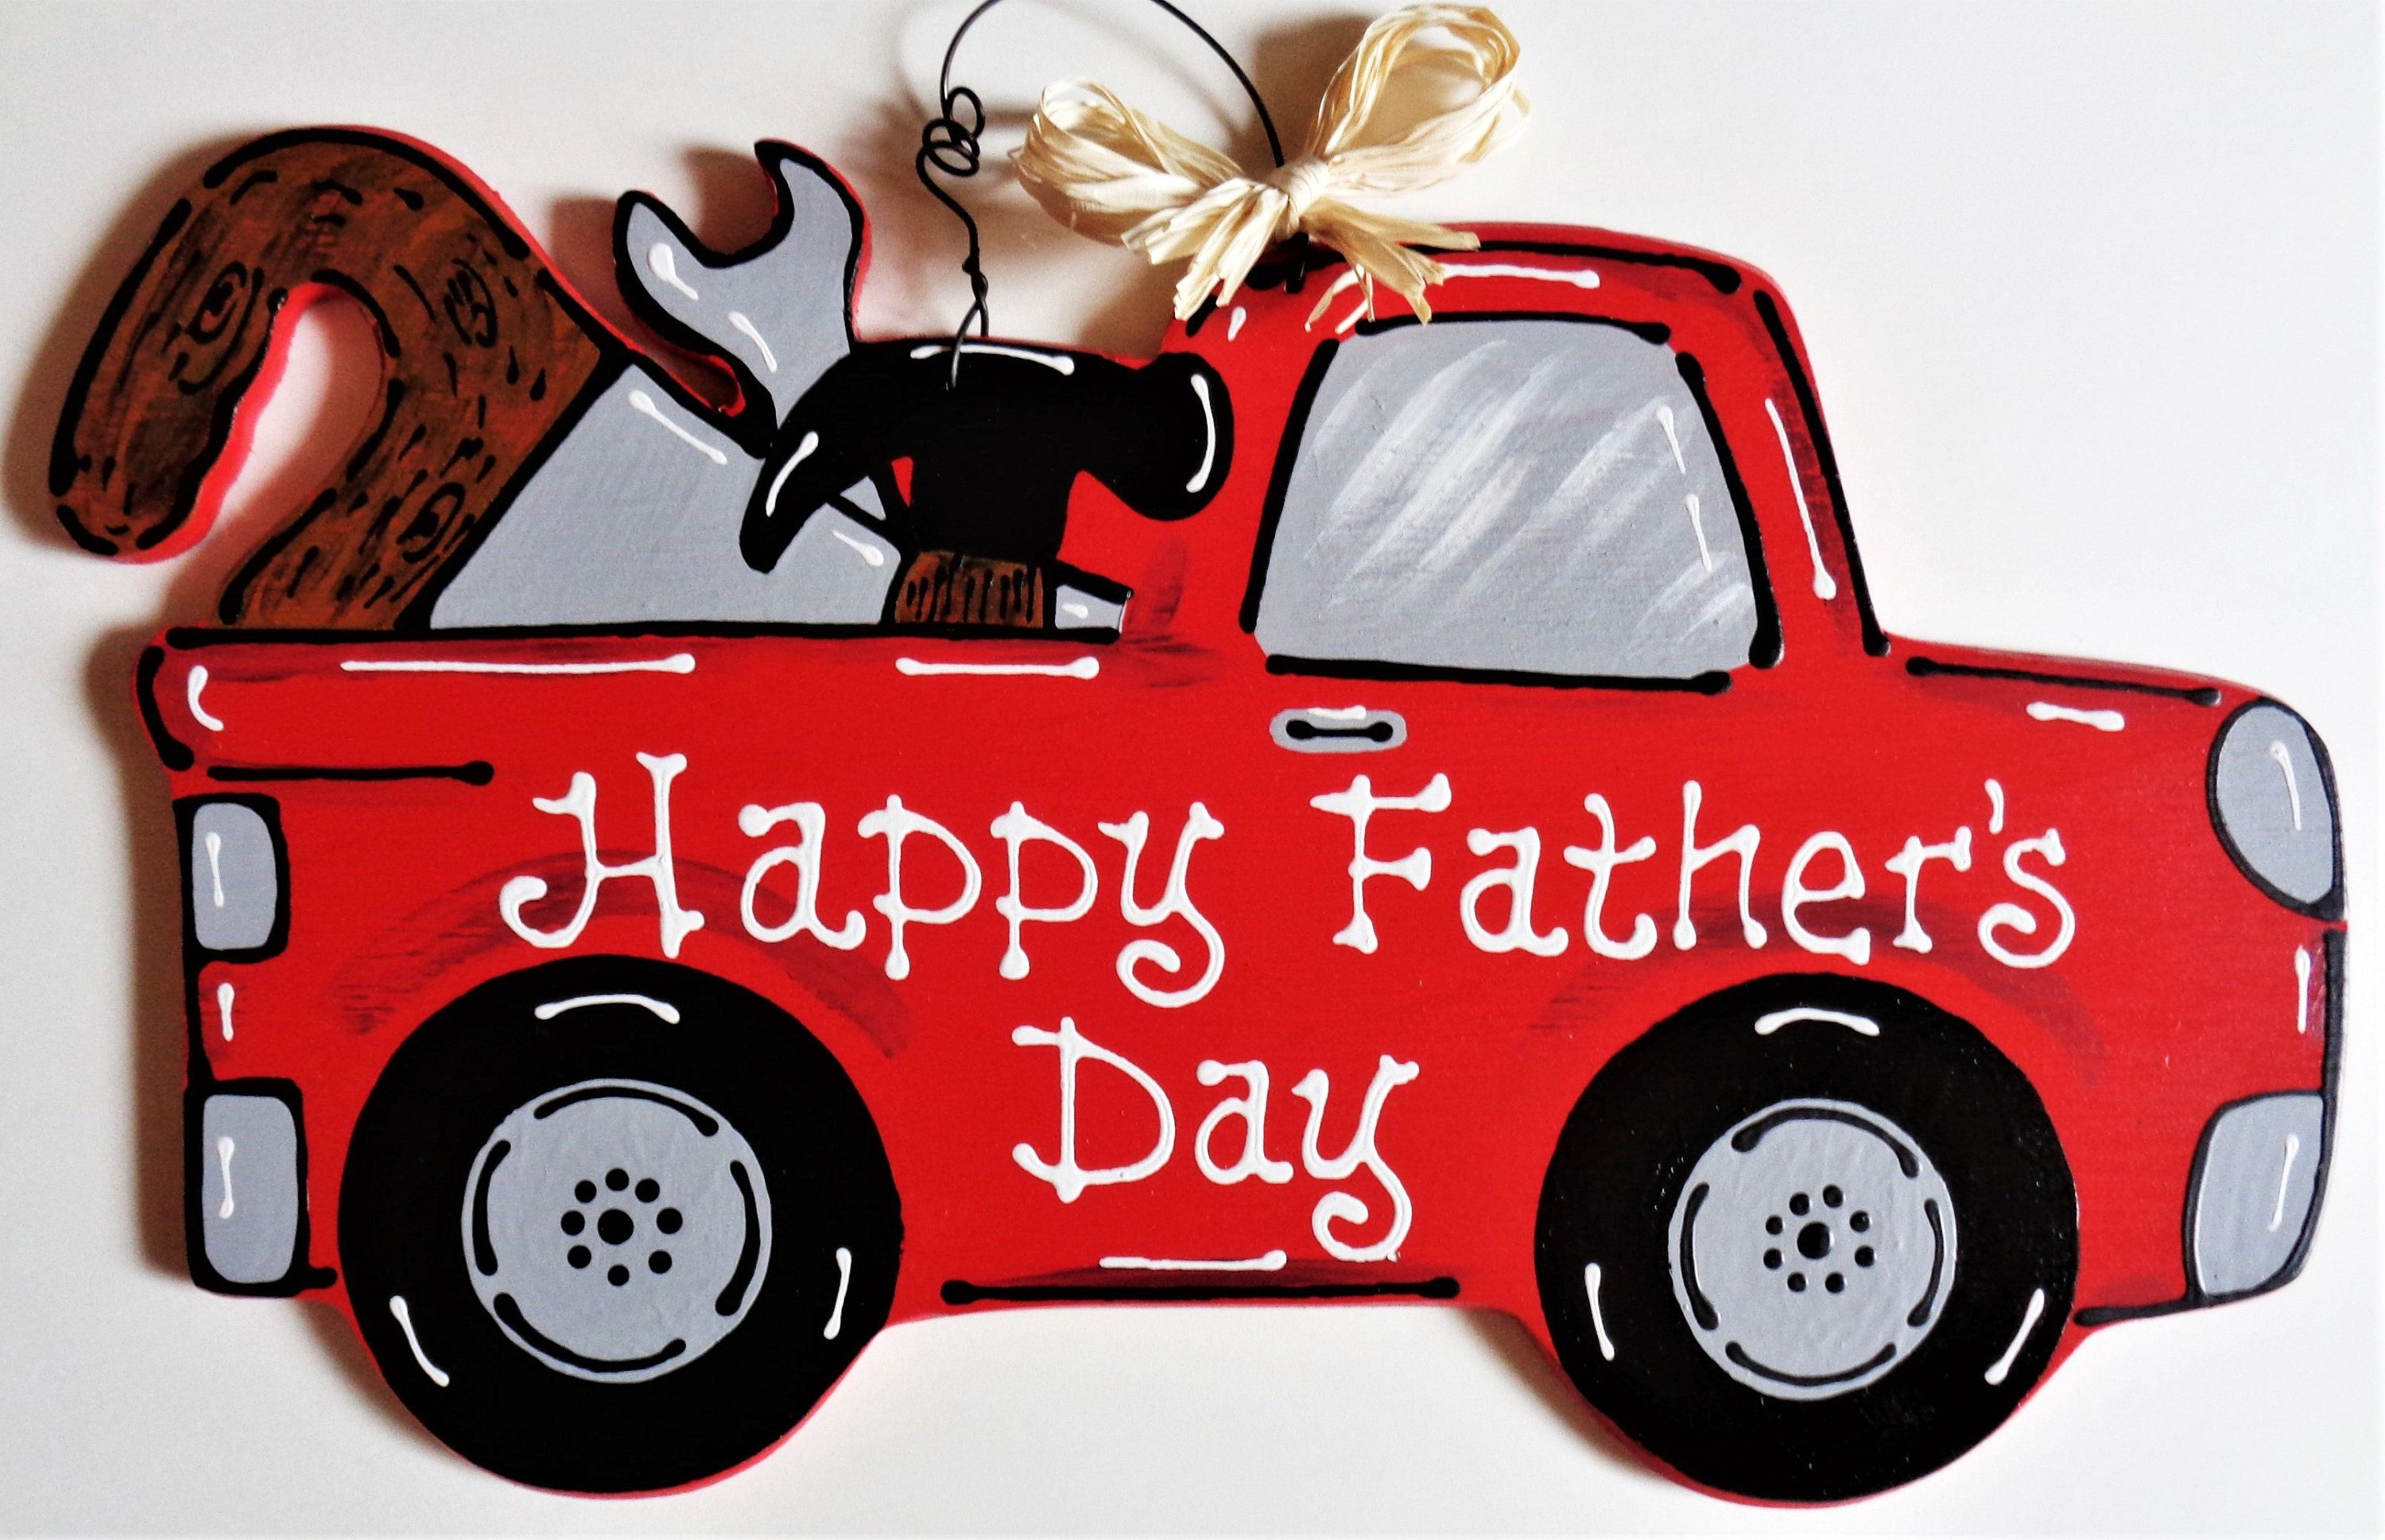 Happy fathers day vintage red truck sign tools hand